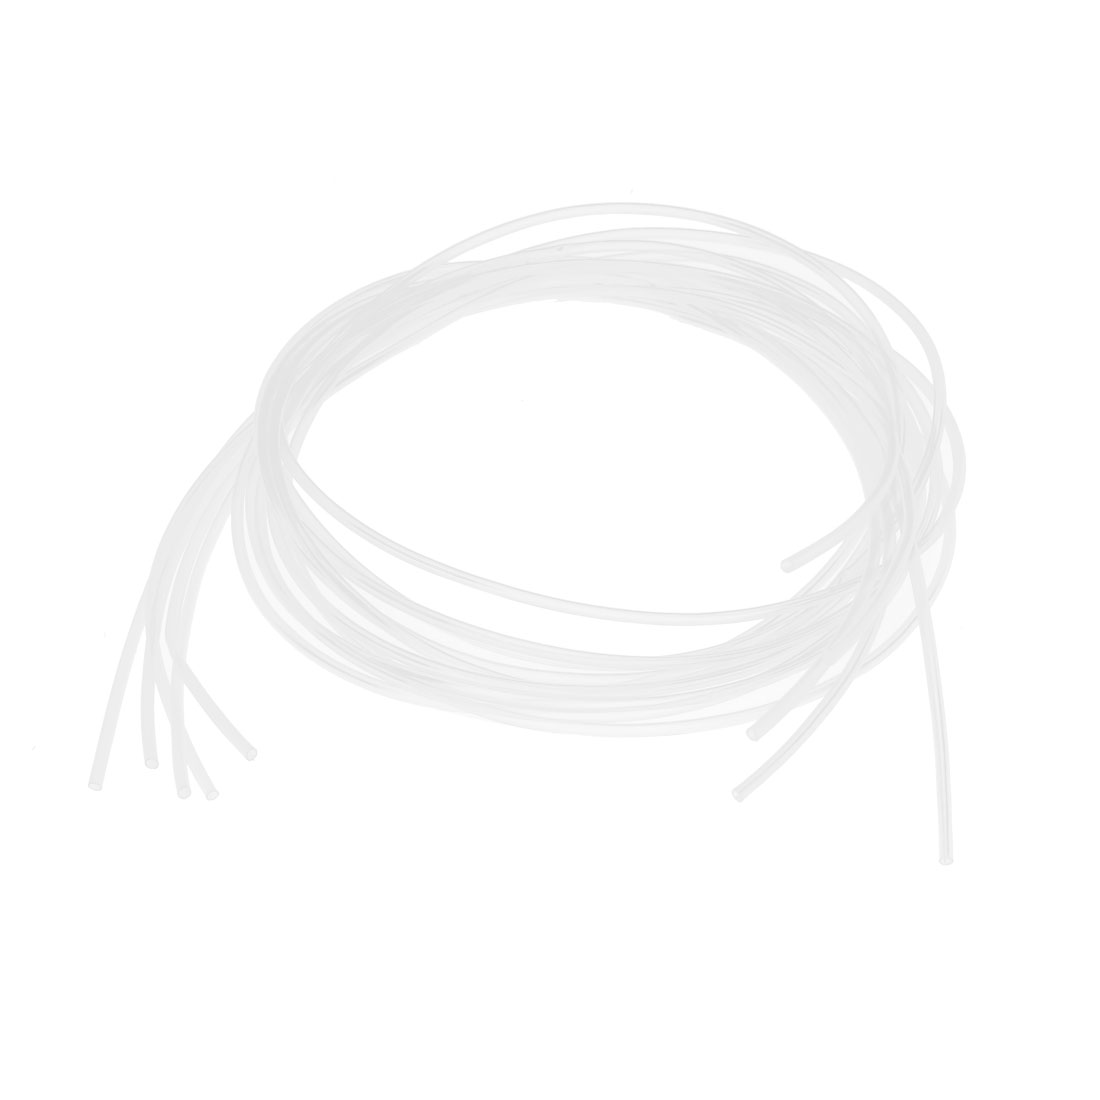 2:1 Shrink Ratio 1M 3.3Ft Clear Flexible Heat Shrinkable Tubing 5pcs